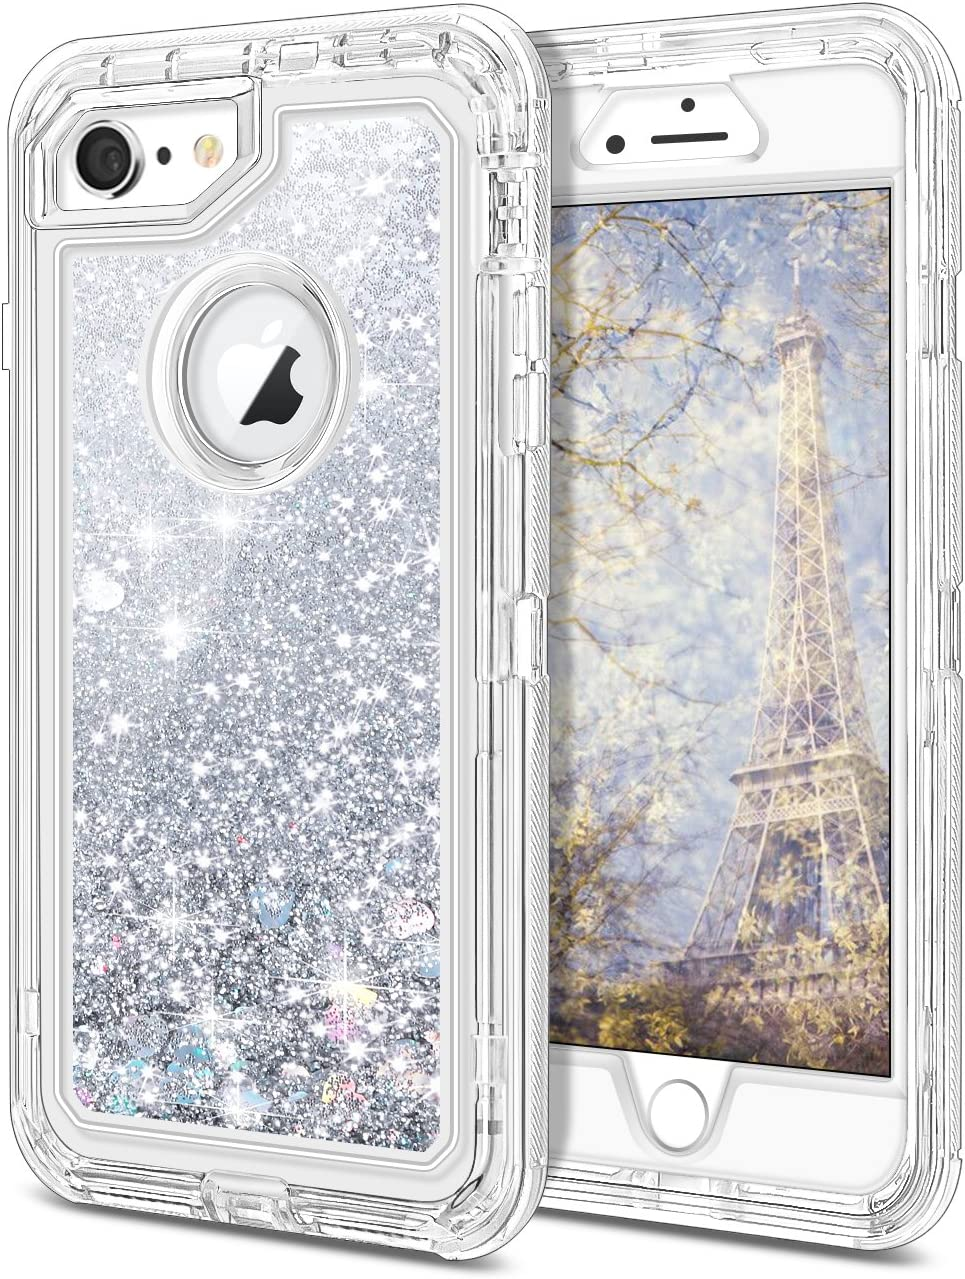 Glitter Cover For Iphone 6: Buy